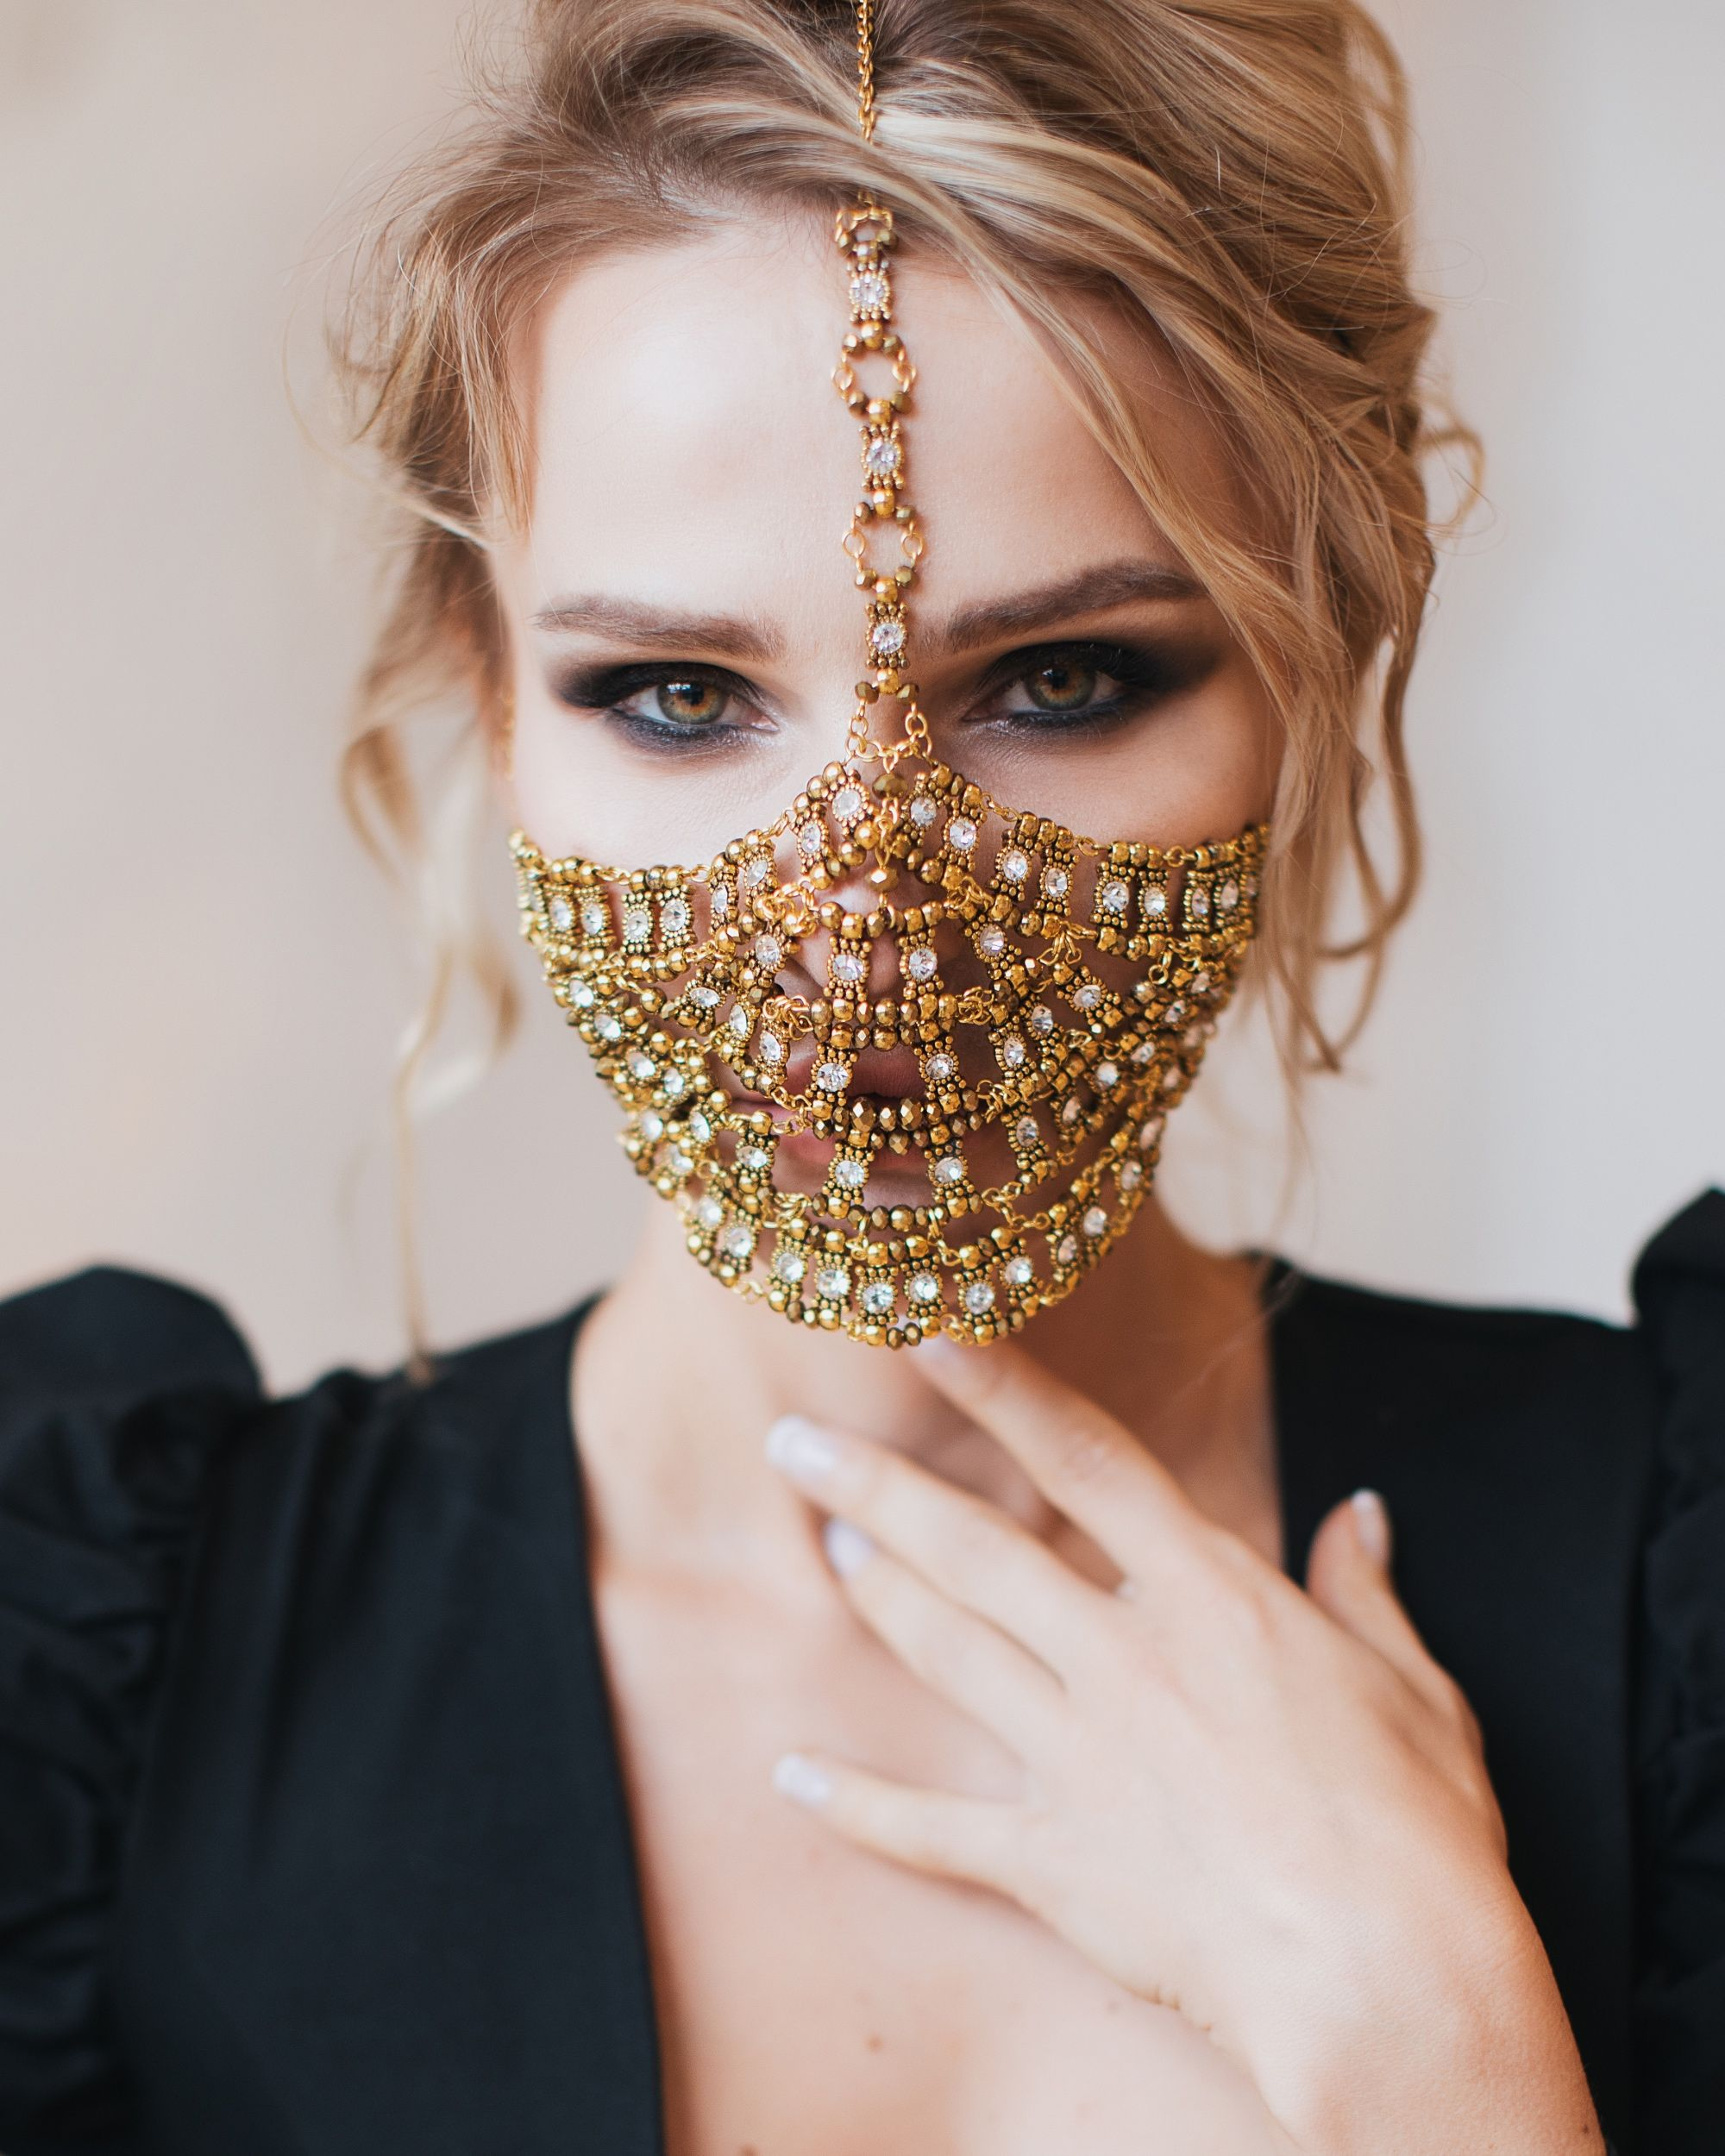 Golden Face Mask Yasmin, Metal Face Jewelry in 2020 | Face ...